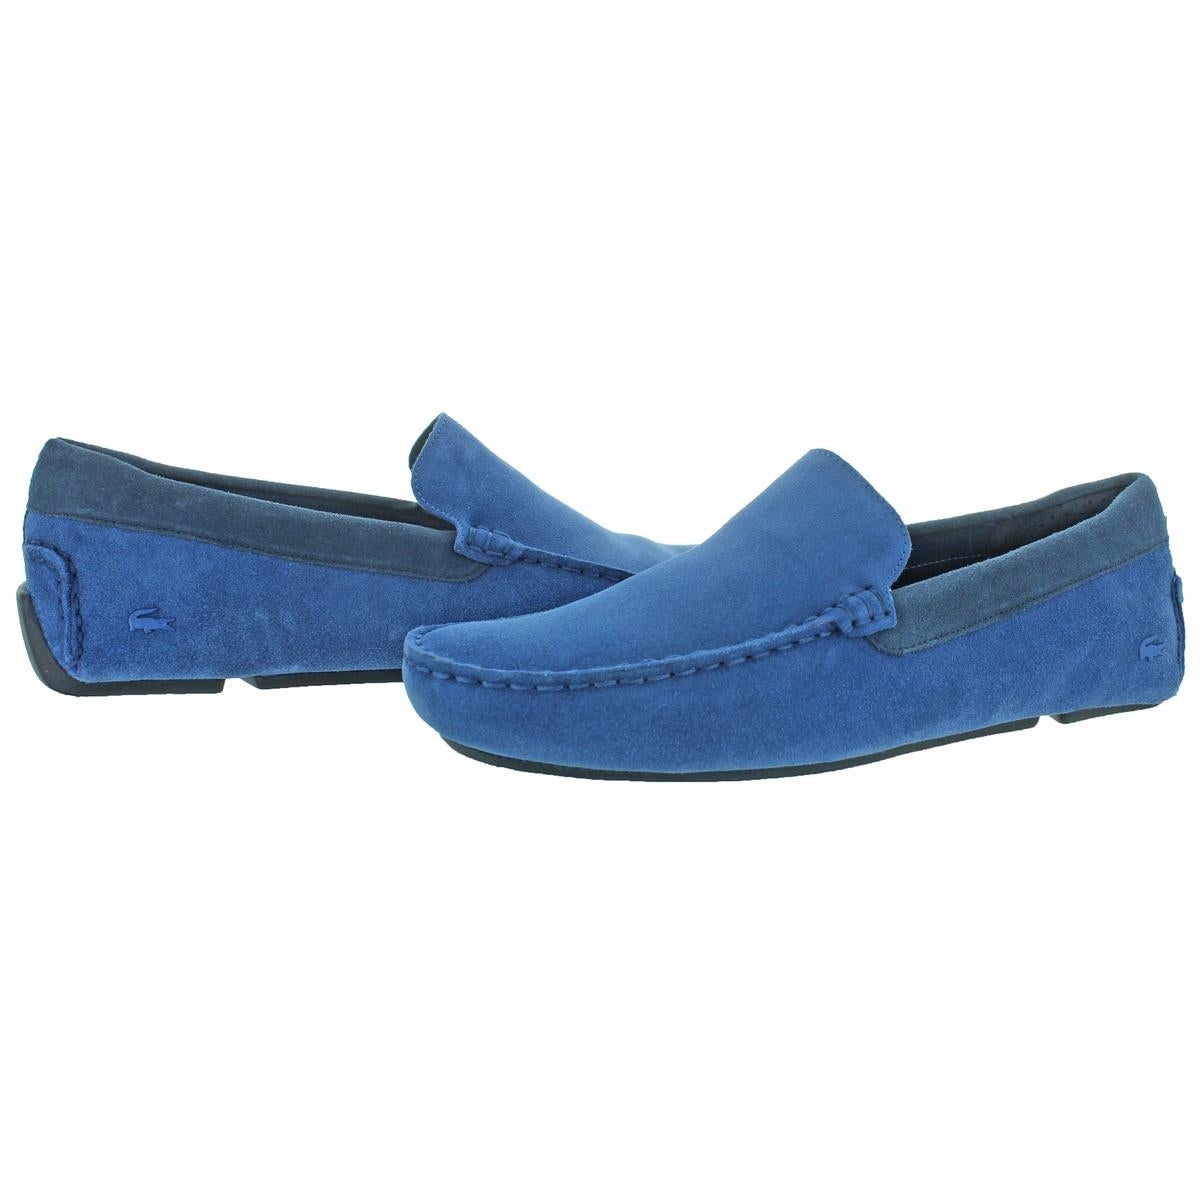 af7796de292f Shop Lacoste Mens Piloter Driving Moccasins Suede Loafer - Free Shipping  Today - Overstock - 24020191